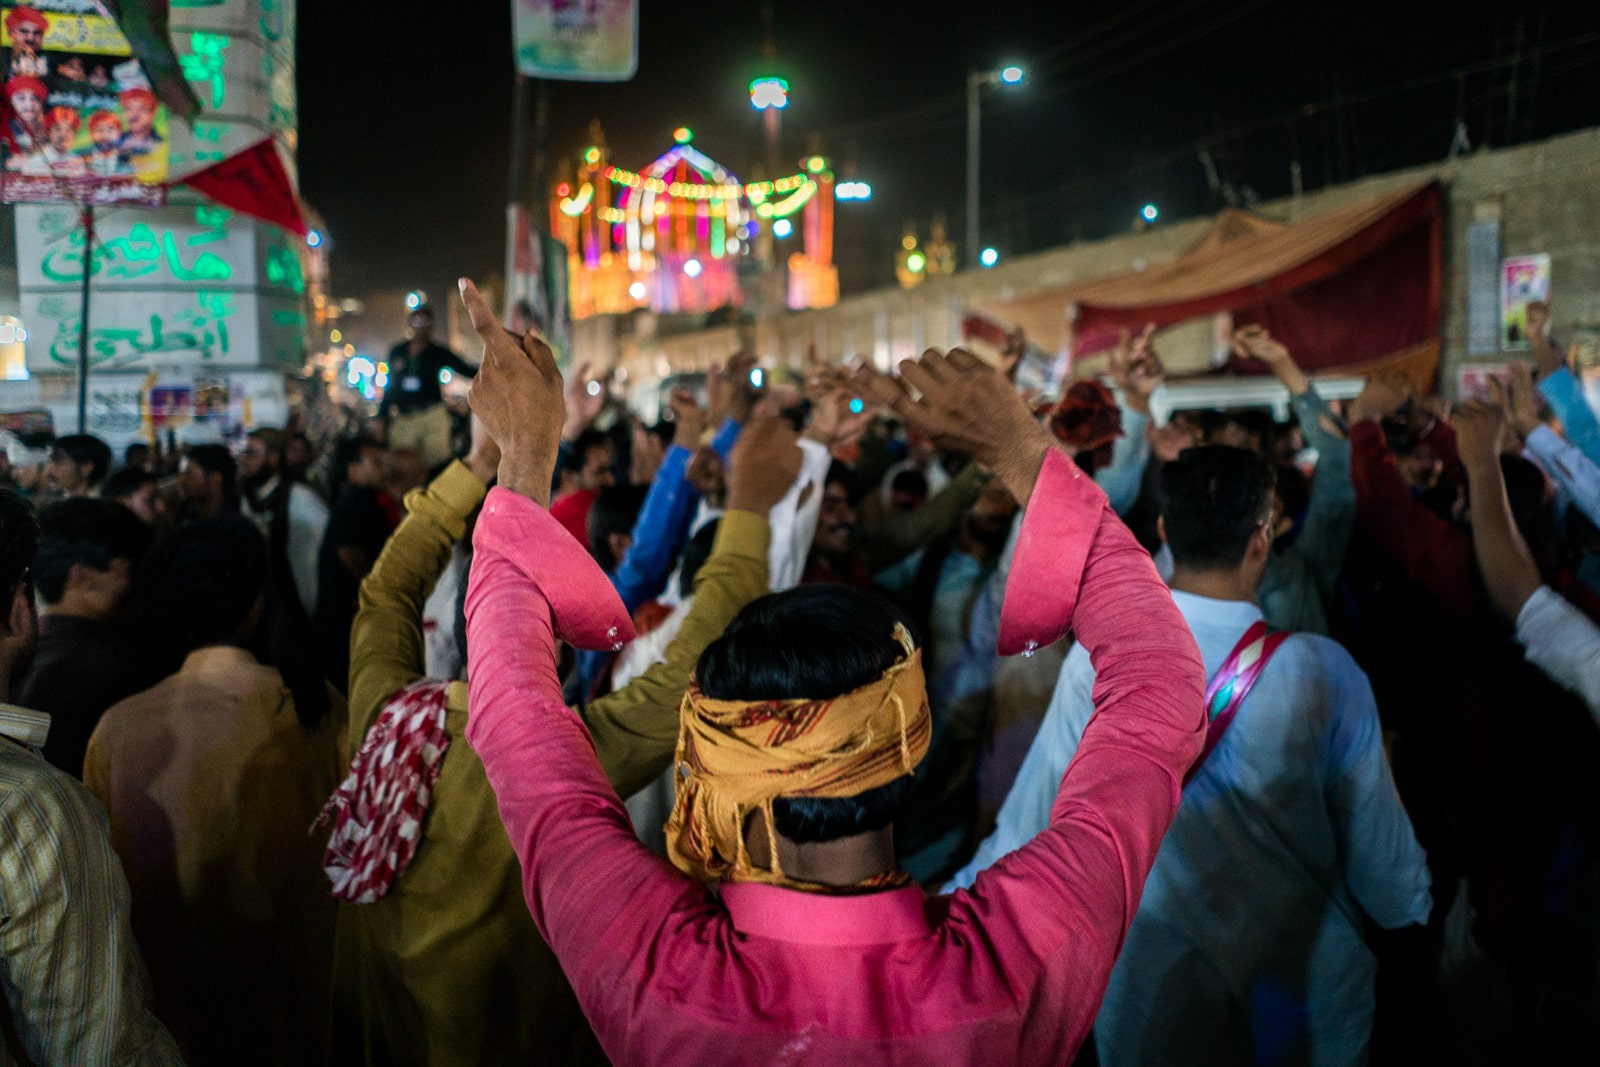 The Urs of Lal Shahbaz Qalandar in Sehwan, Pakistan - People dancing on the streets of Sehwan at night - Lost WIth Purpose travel blog